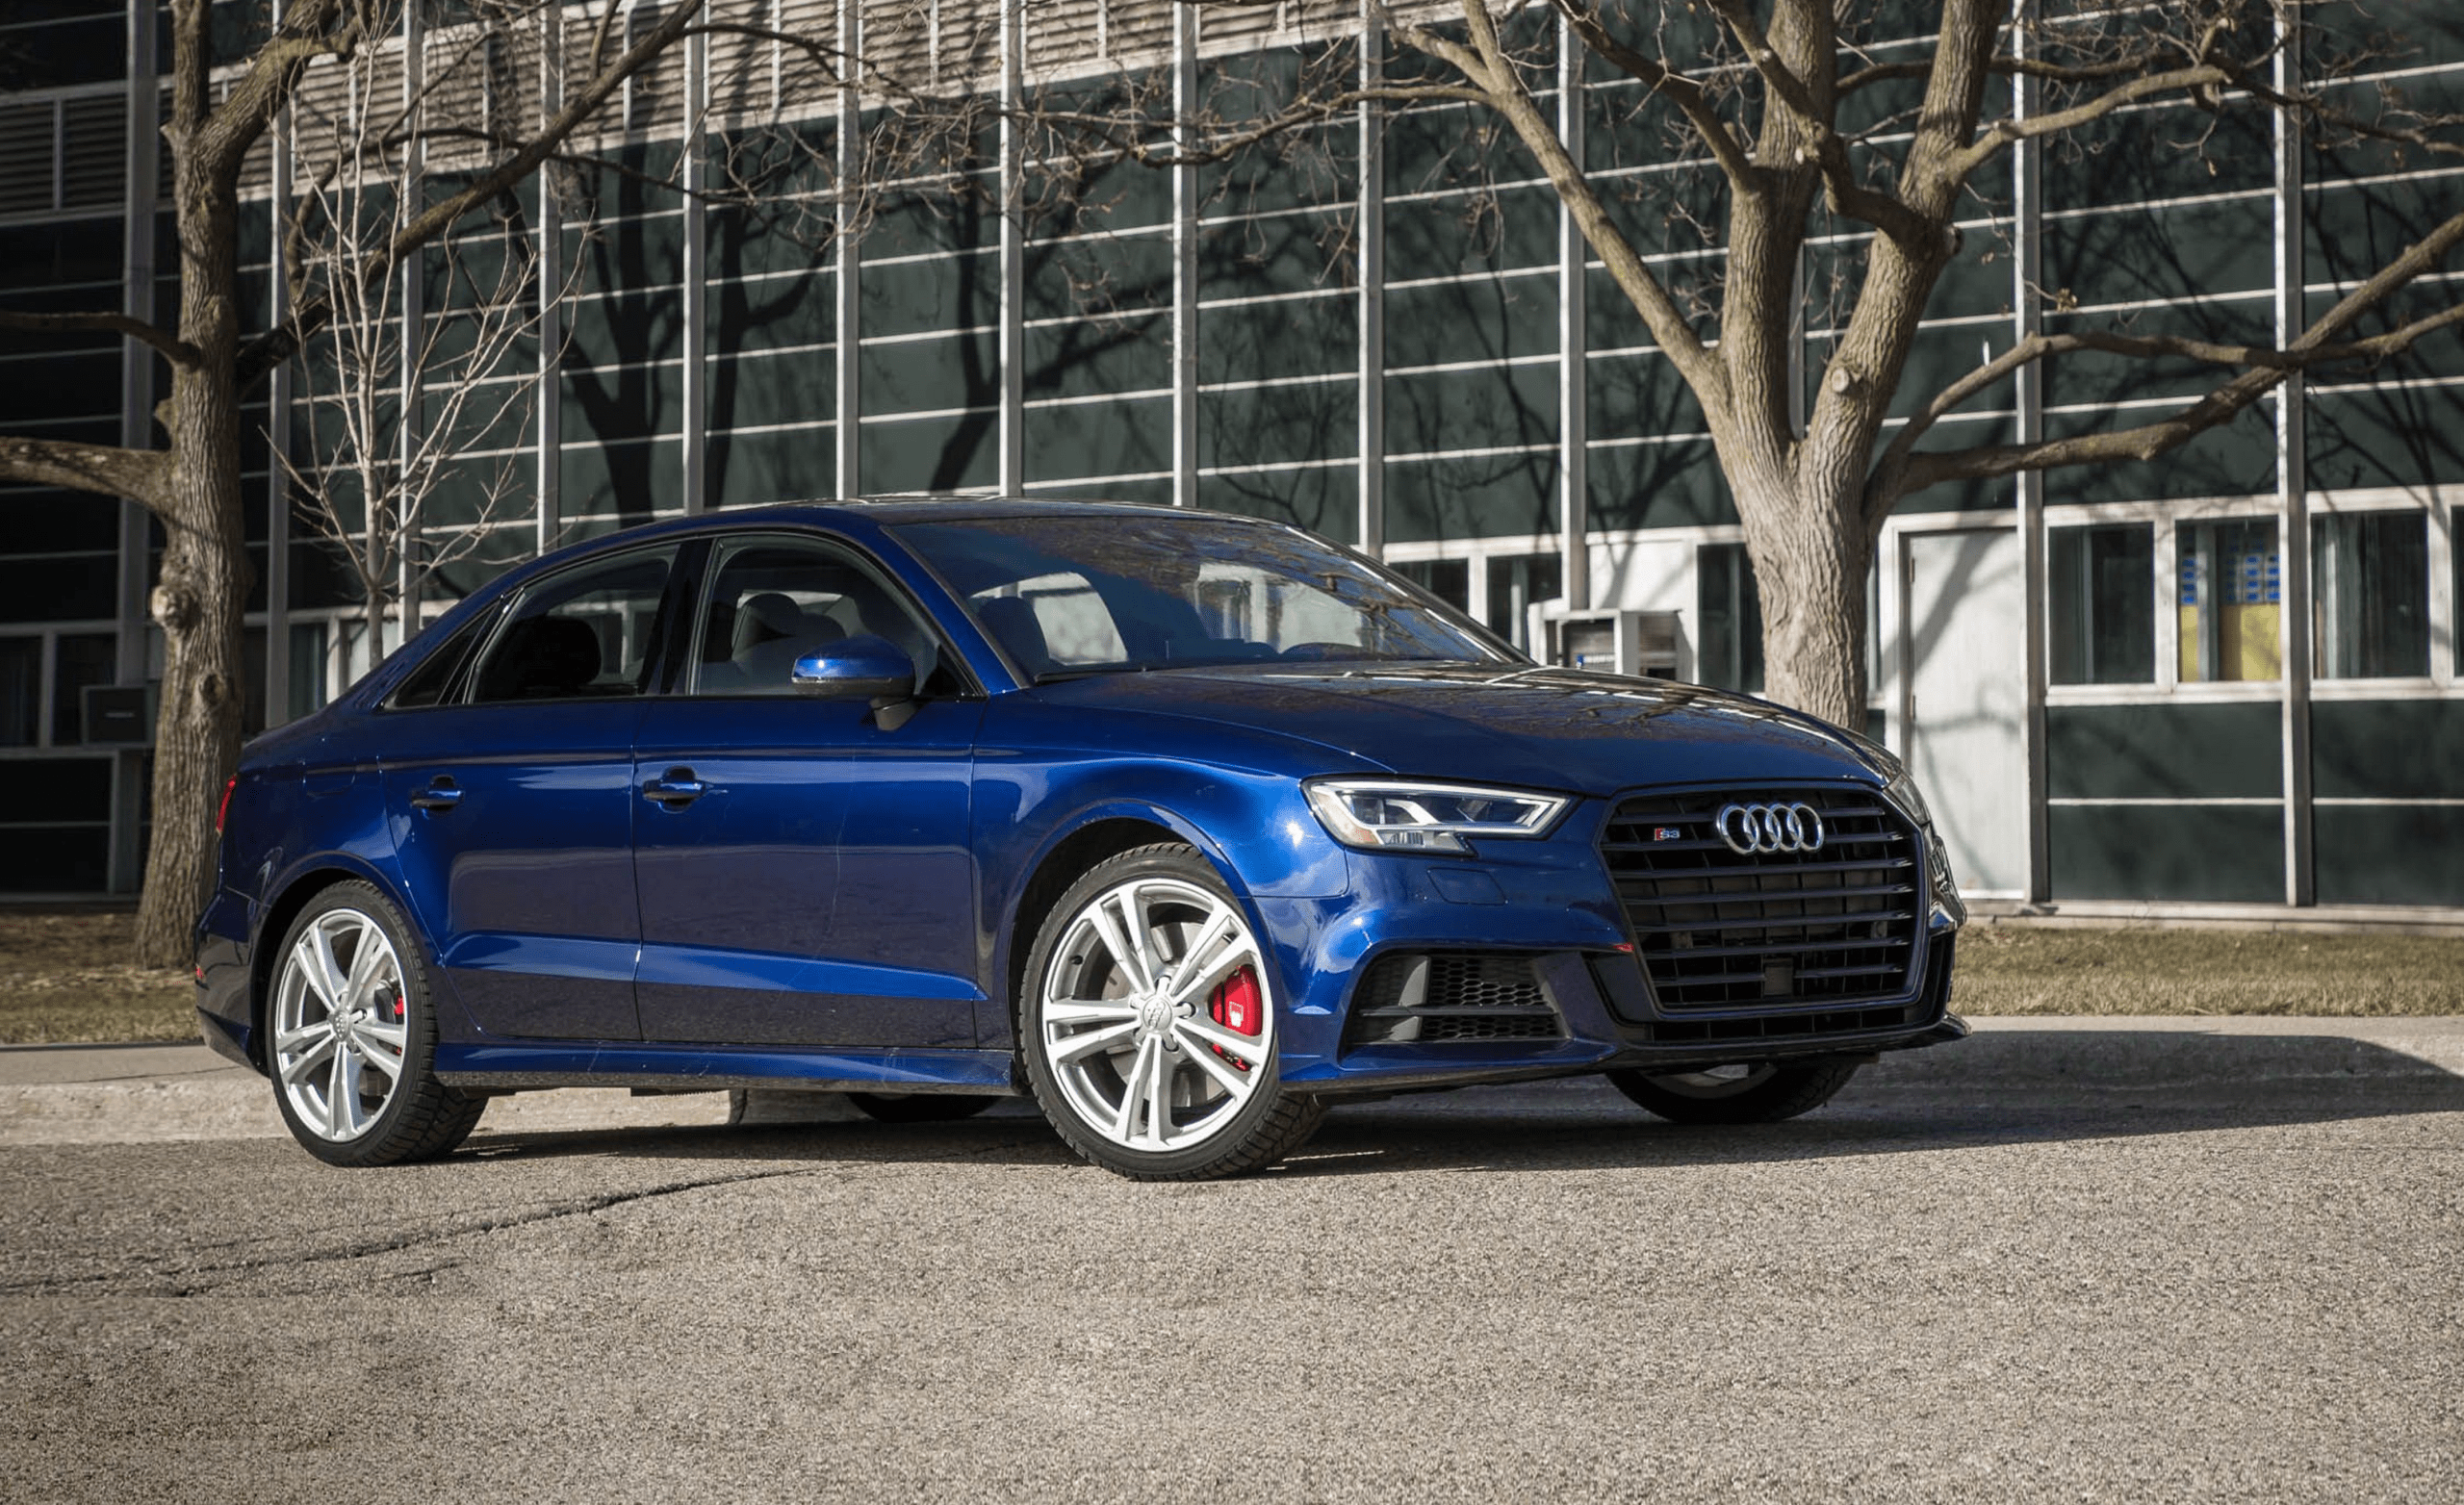 2020 audi q5 suv price and review in 2020  audi audi rs3